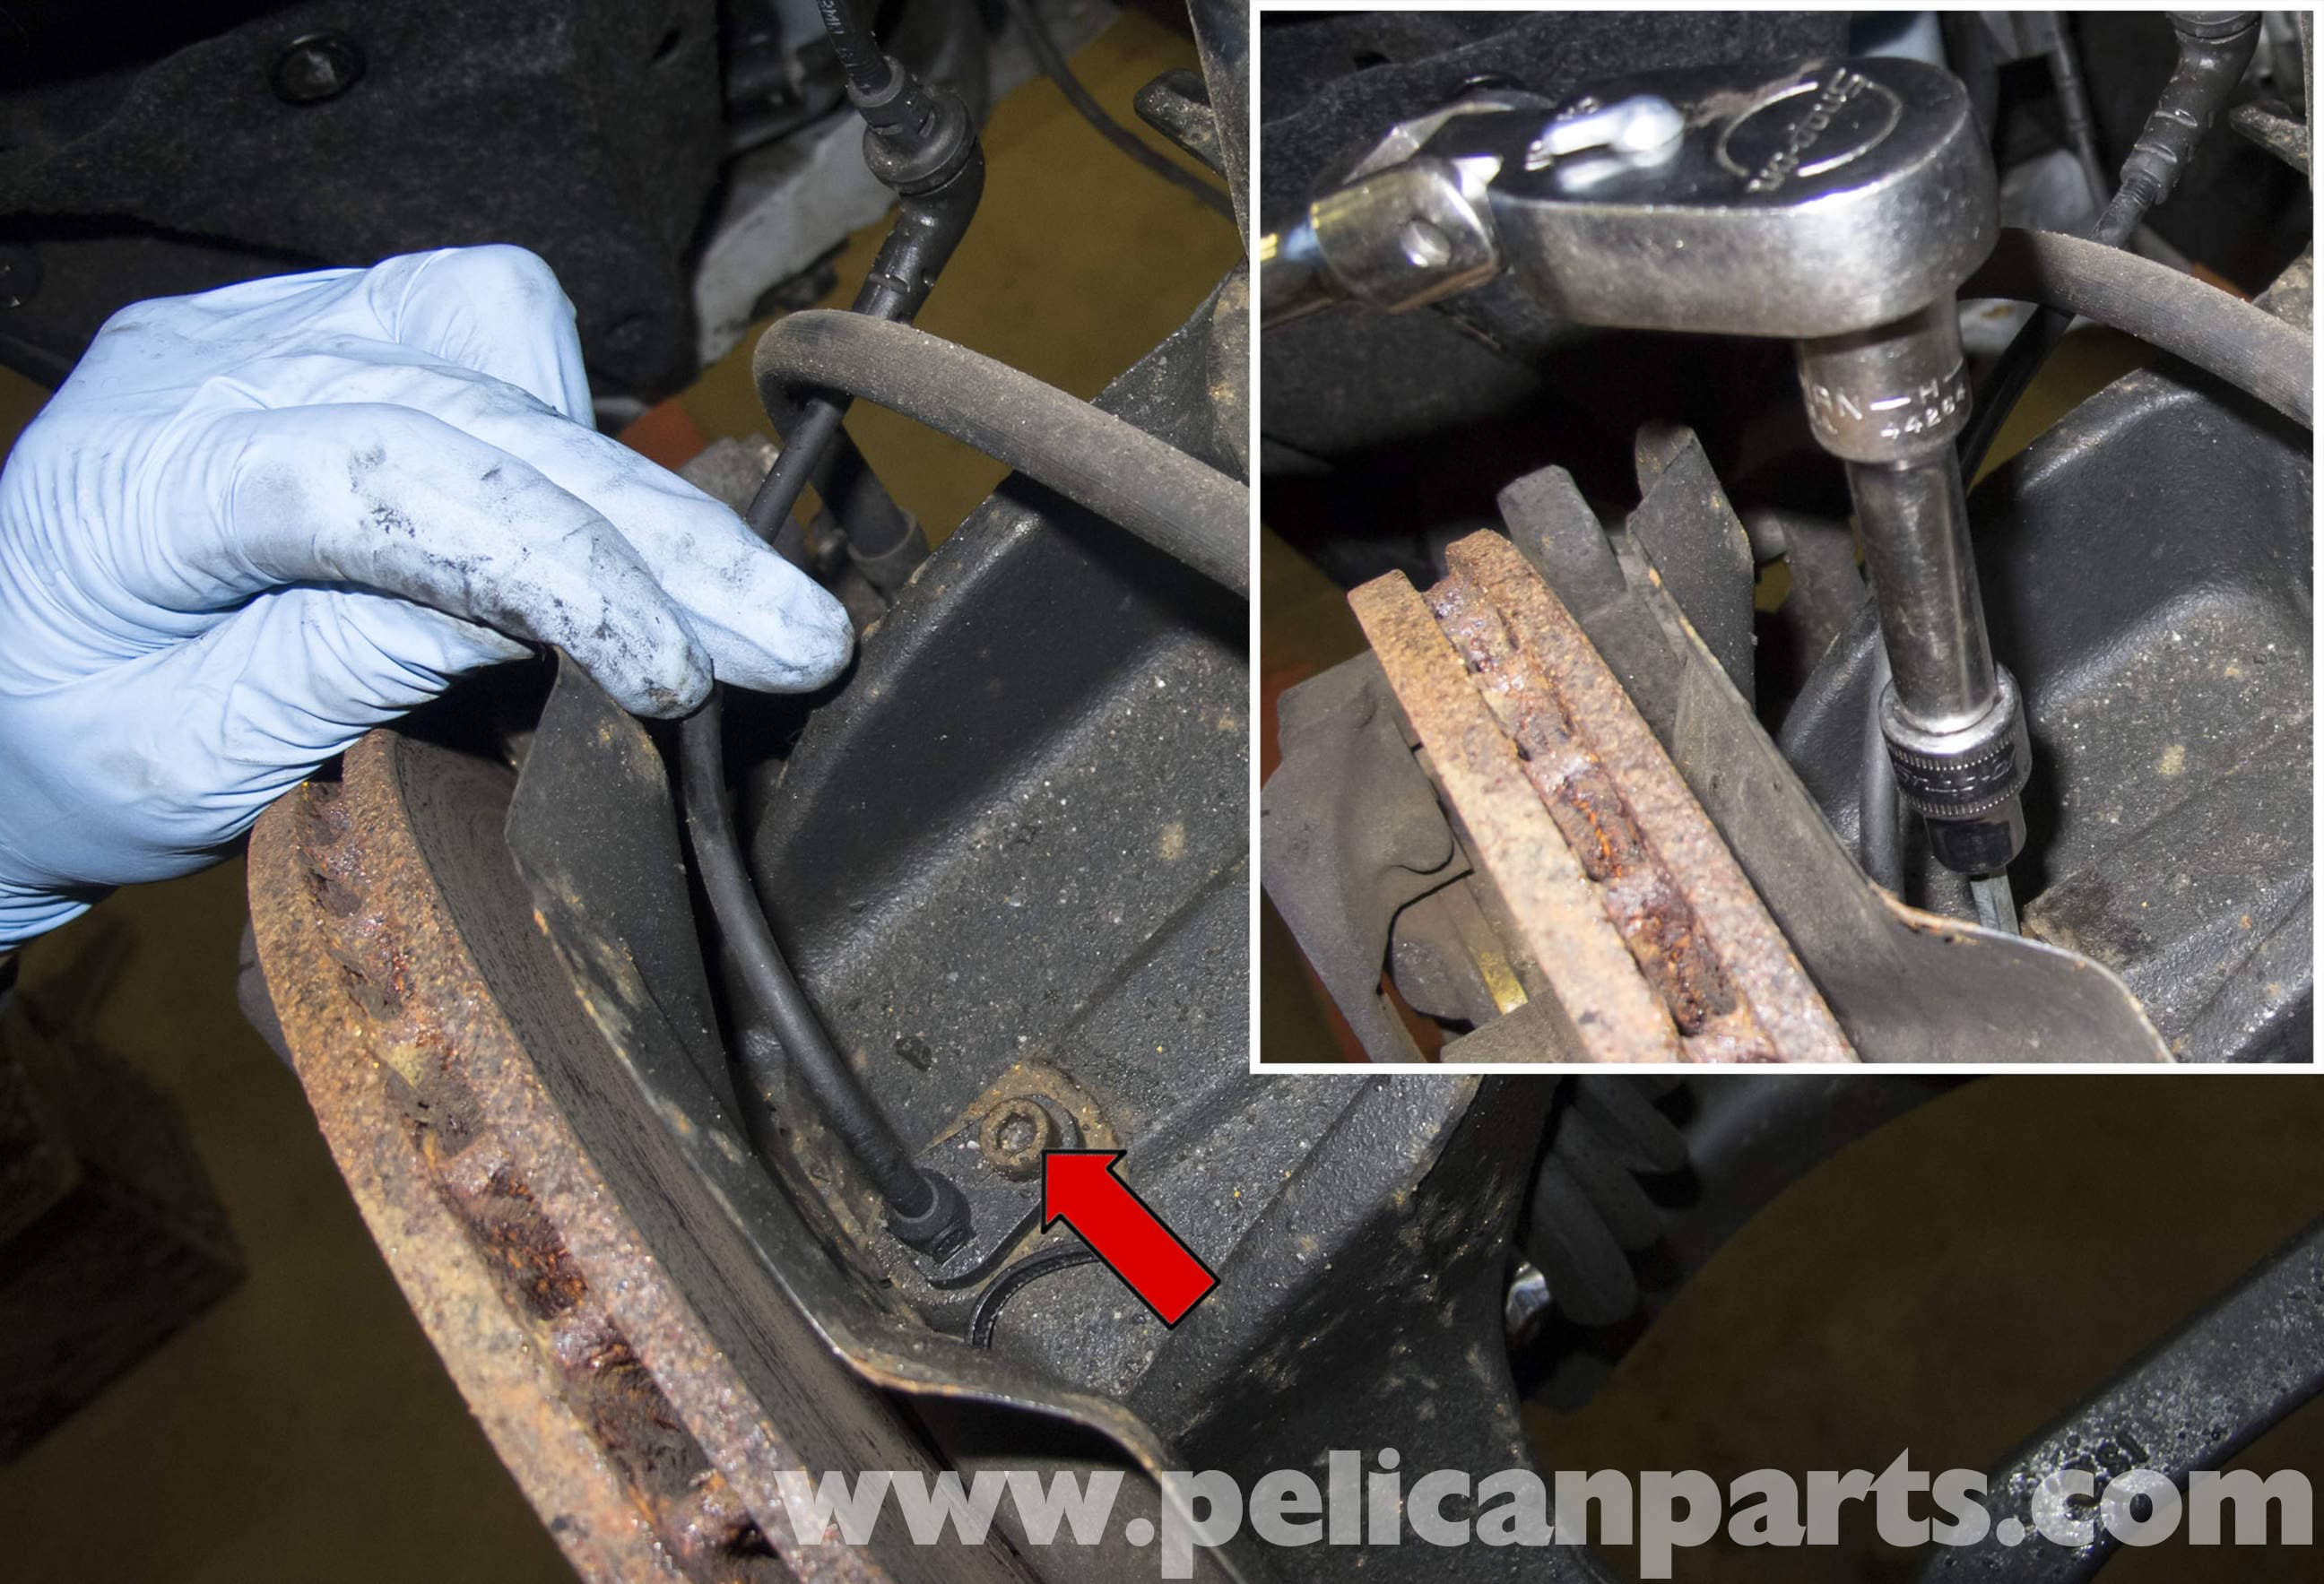 Pic in addition Pic further Pic as well Maxresdefault likewise Pic. on bmw coolant temperature sensor location